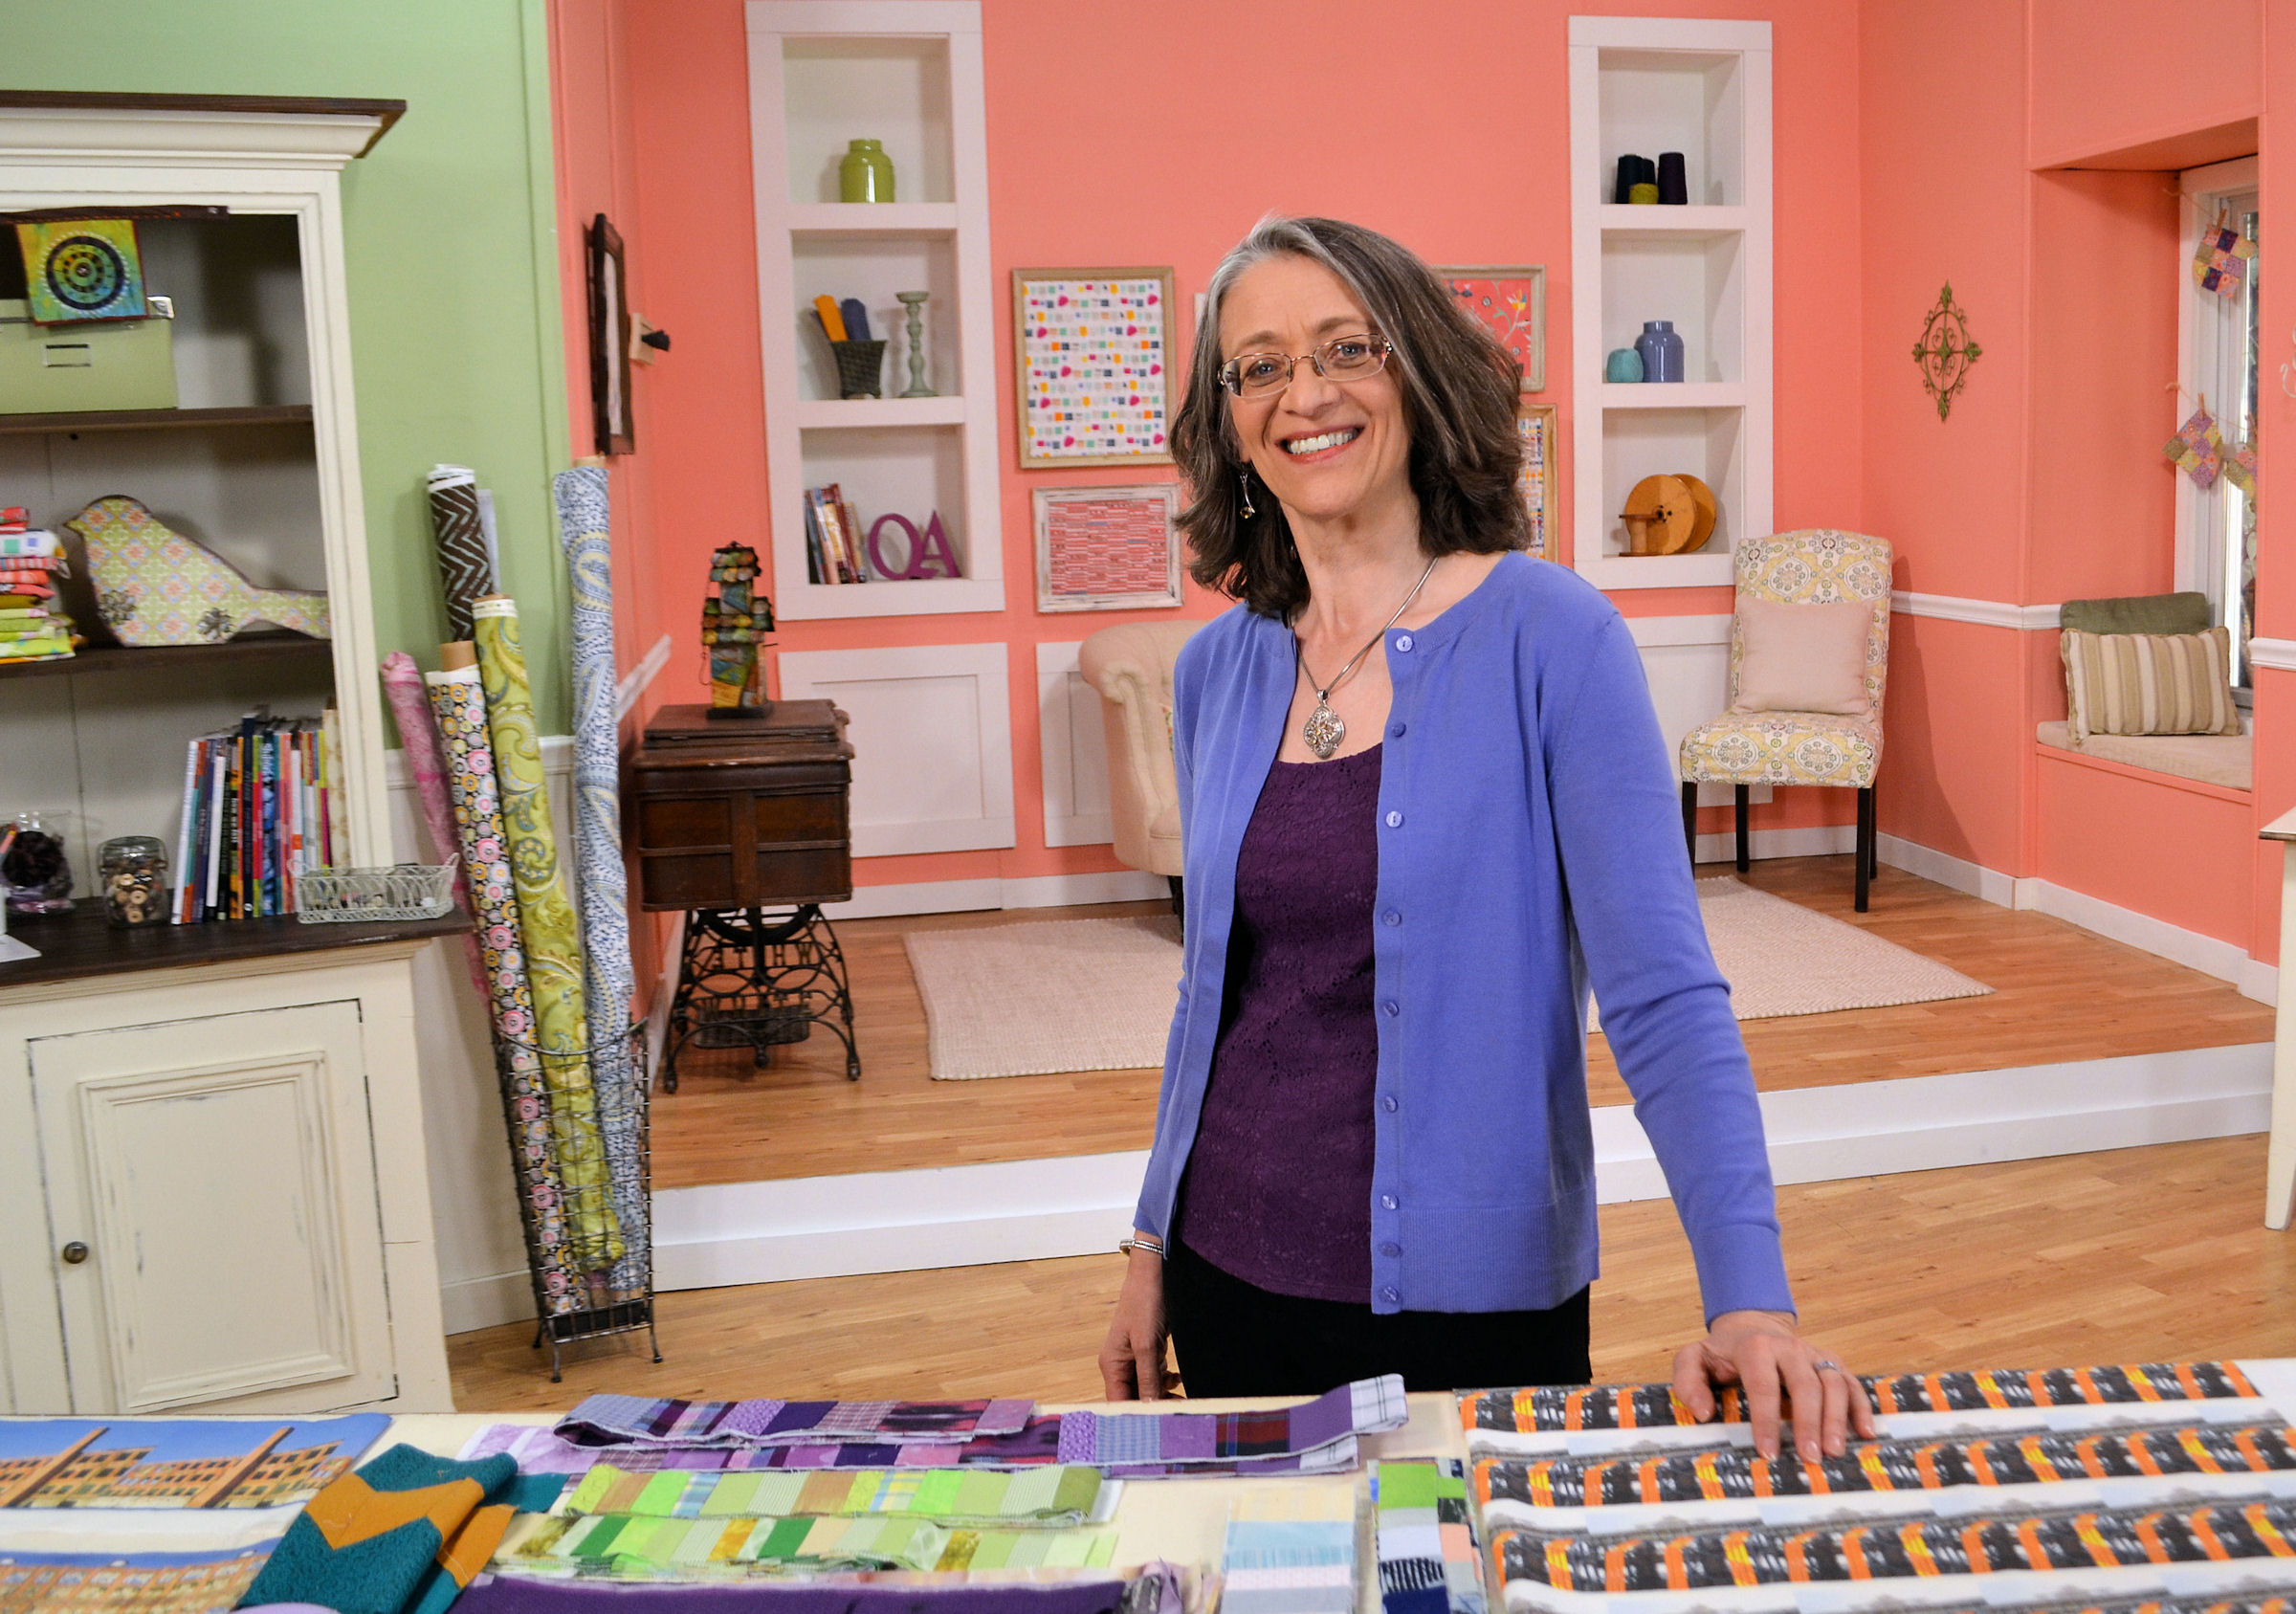 On the set of Quilting Arts TV,filming  Surface Design Essentials for the Printed Quilt      phone: 717-842-0651     email:      SUE@SUERENO.COM     Clicking the email link above will work if you have enabled email access on your browser; otherwise, copy and paste. I look forward to hearing from you.